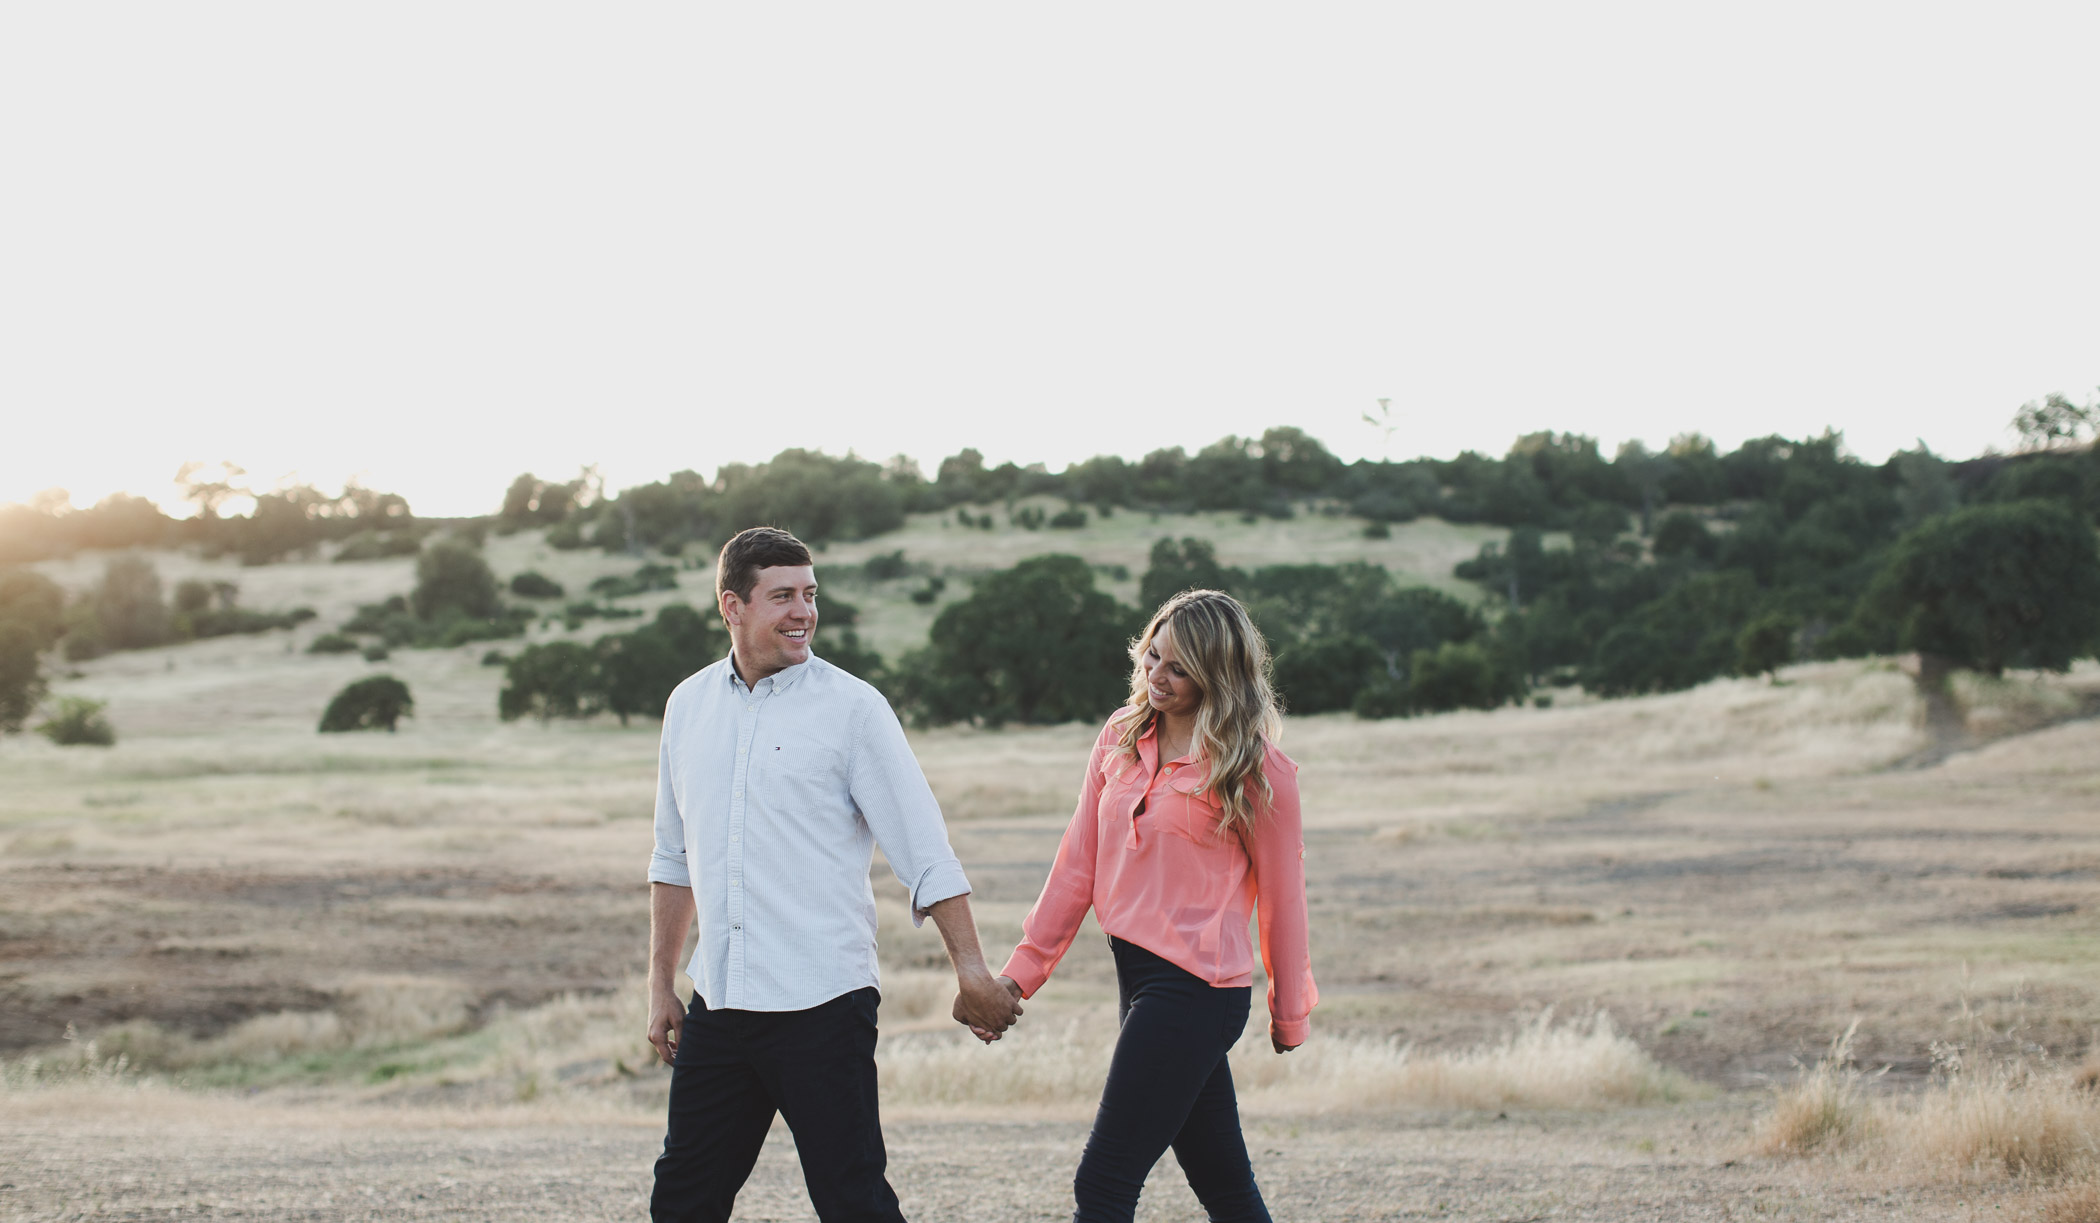 AVH_Photography_upper_bidwell_park_engagement_photography_chico_california_spring_bidwell_golf_course_0038.jpg